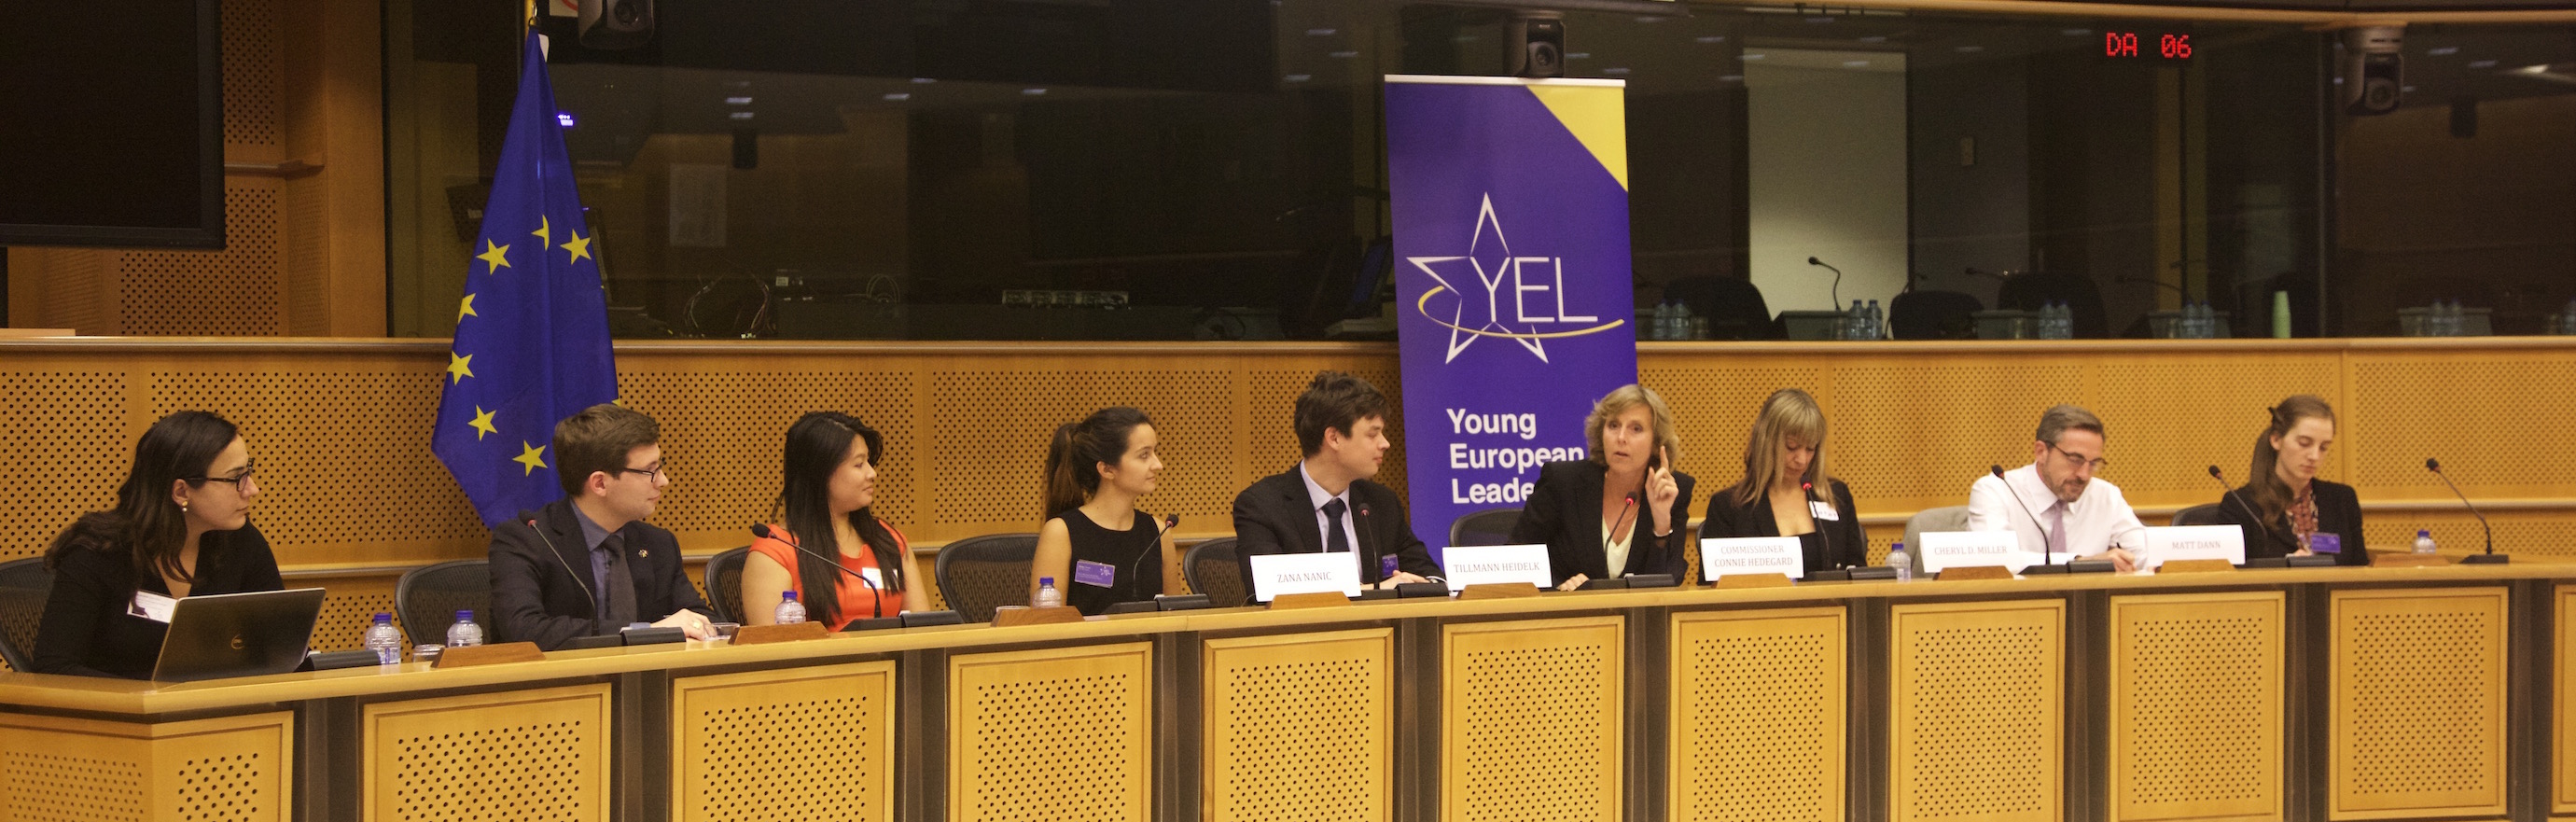 Young European Council YEC closing ceremony 2014 Stephanie Antonian Pierre Manenti Nadia Tjahja Zana Nanic Tillmann Heidelk Connie Hedegaard EU Commission Cheryl Miller Digital Leadership institute Matt Dann Bruegel Diana Carter